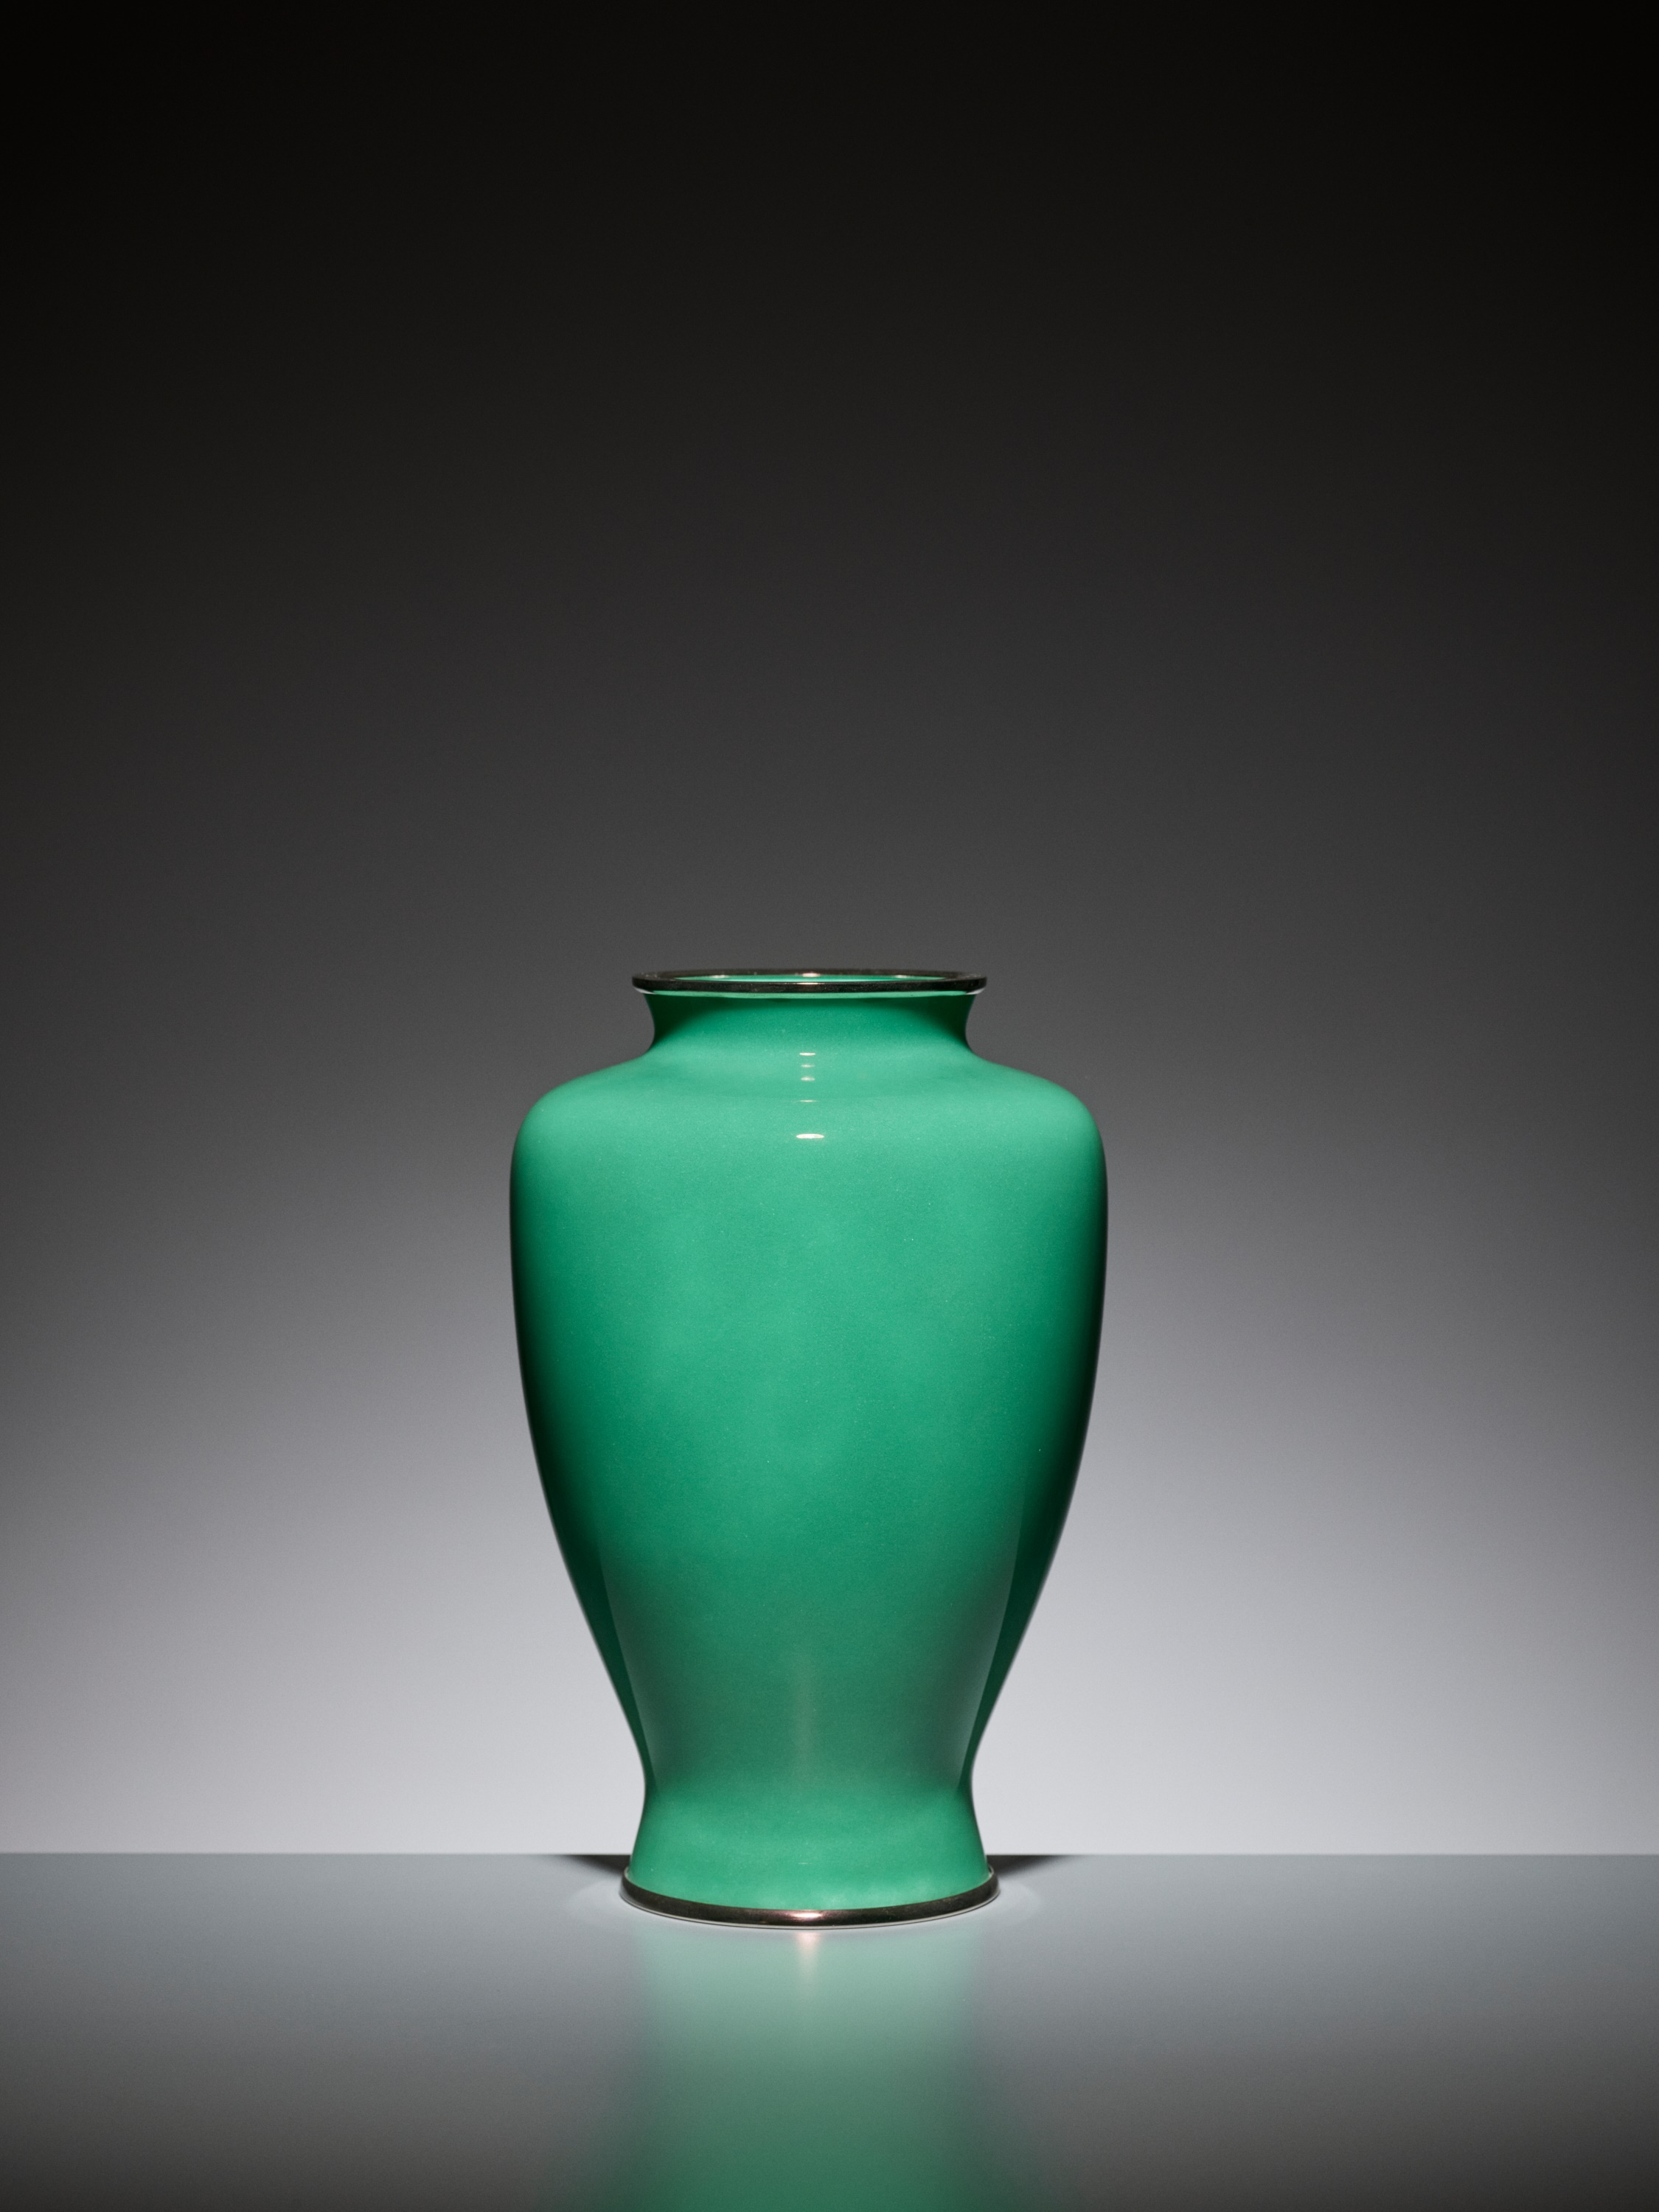 AN EMERALD GREEN CLOISONNE ENAMEL VASE WITH PEONY, ATTRIBUTED TO THE WORKSHOP OF ANDO JUBEI - Image 3 of 6